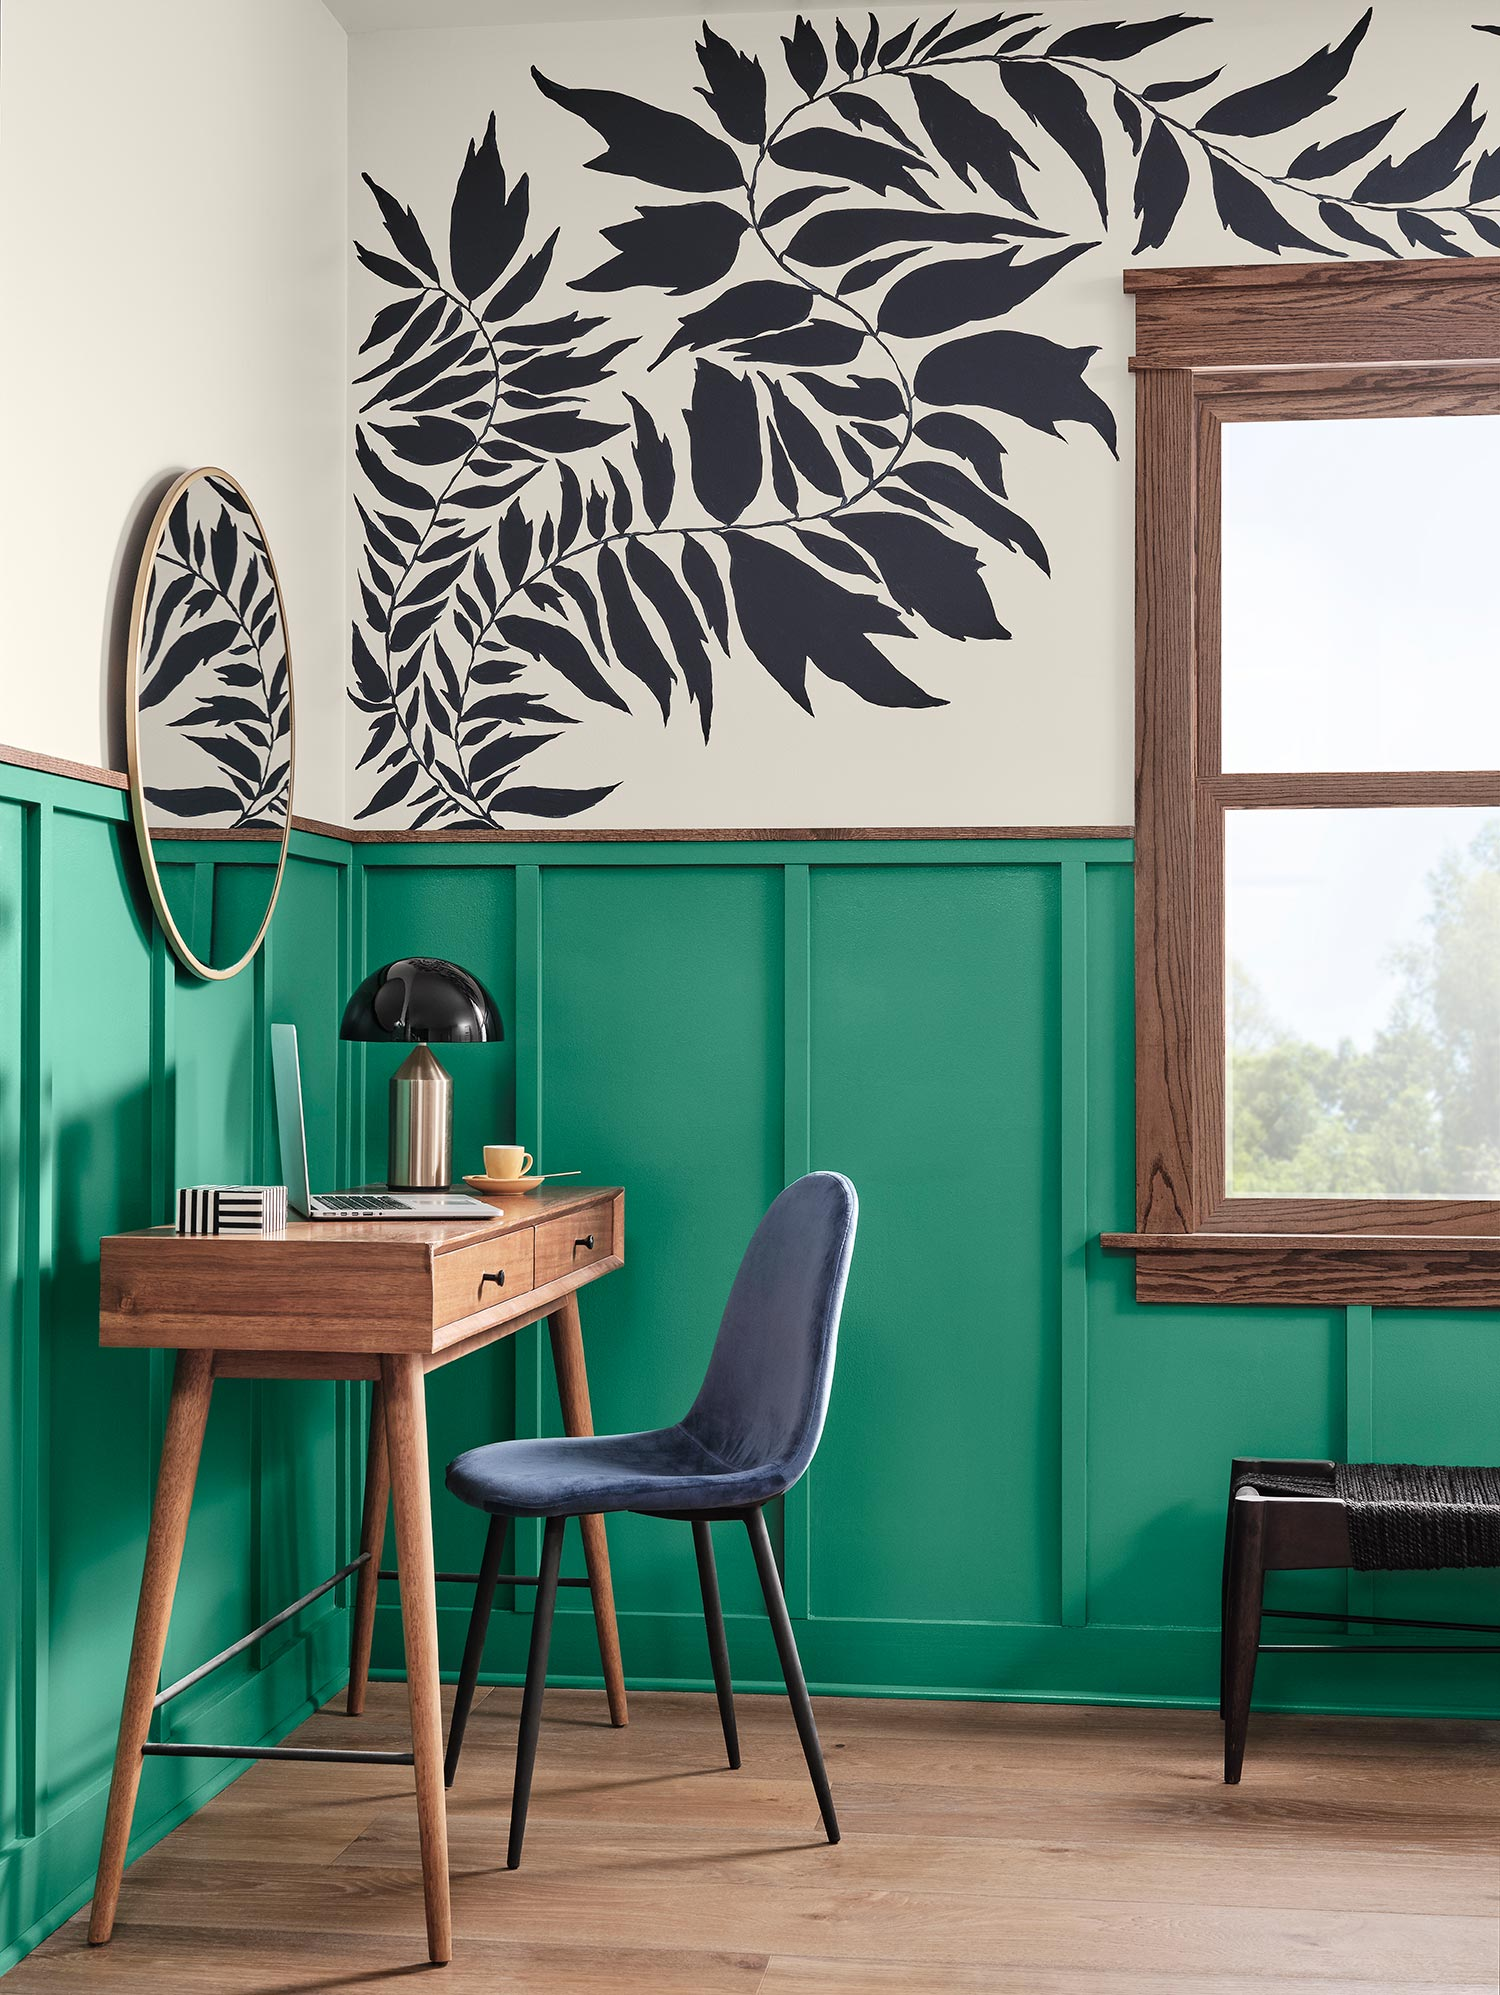 Small home office area with walls painted Alexandrite SW 0060 and hand-painted plant pattern.